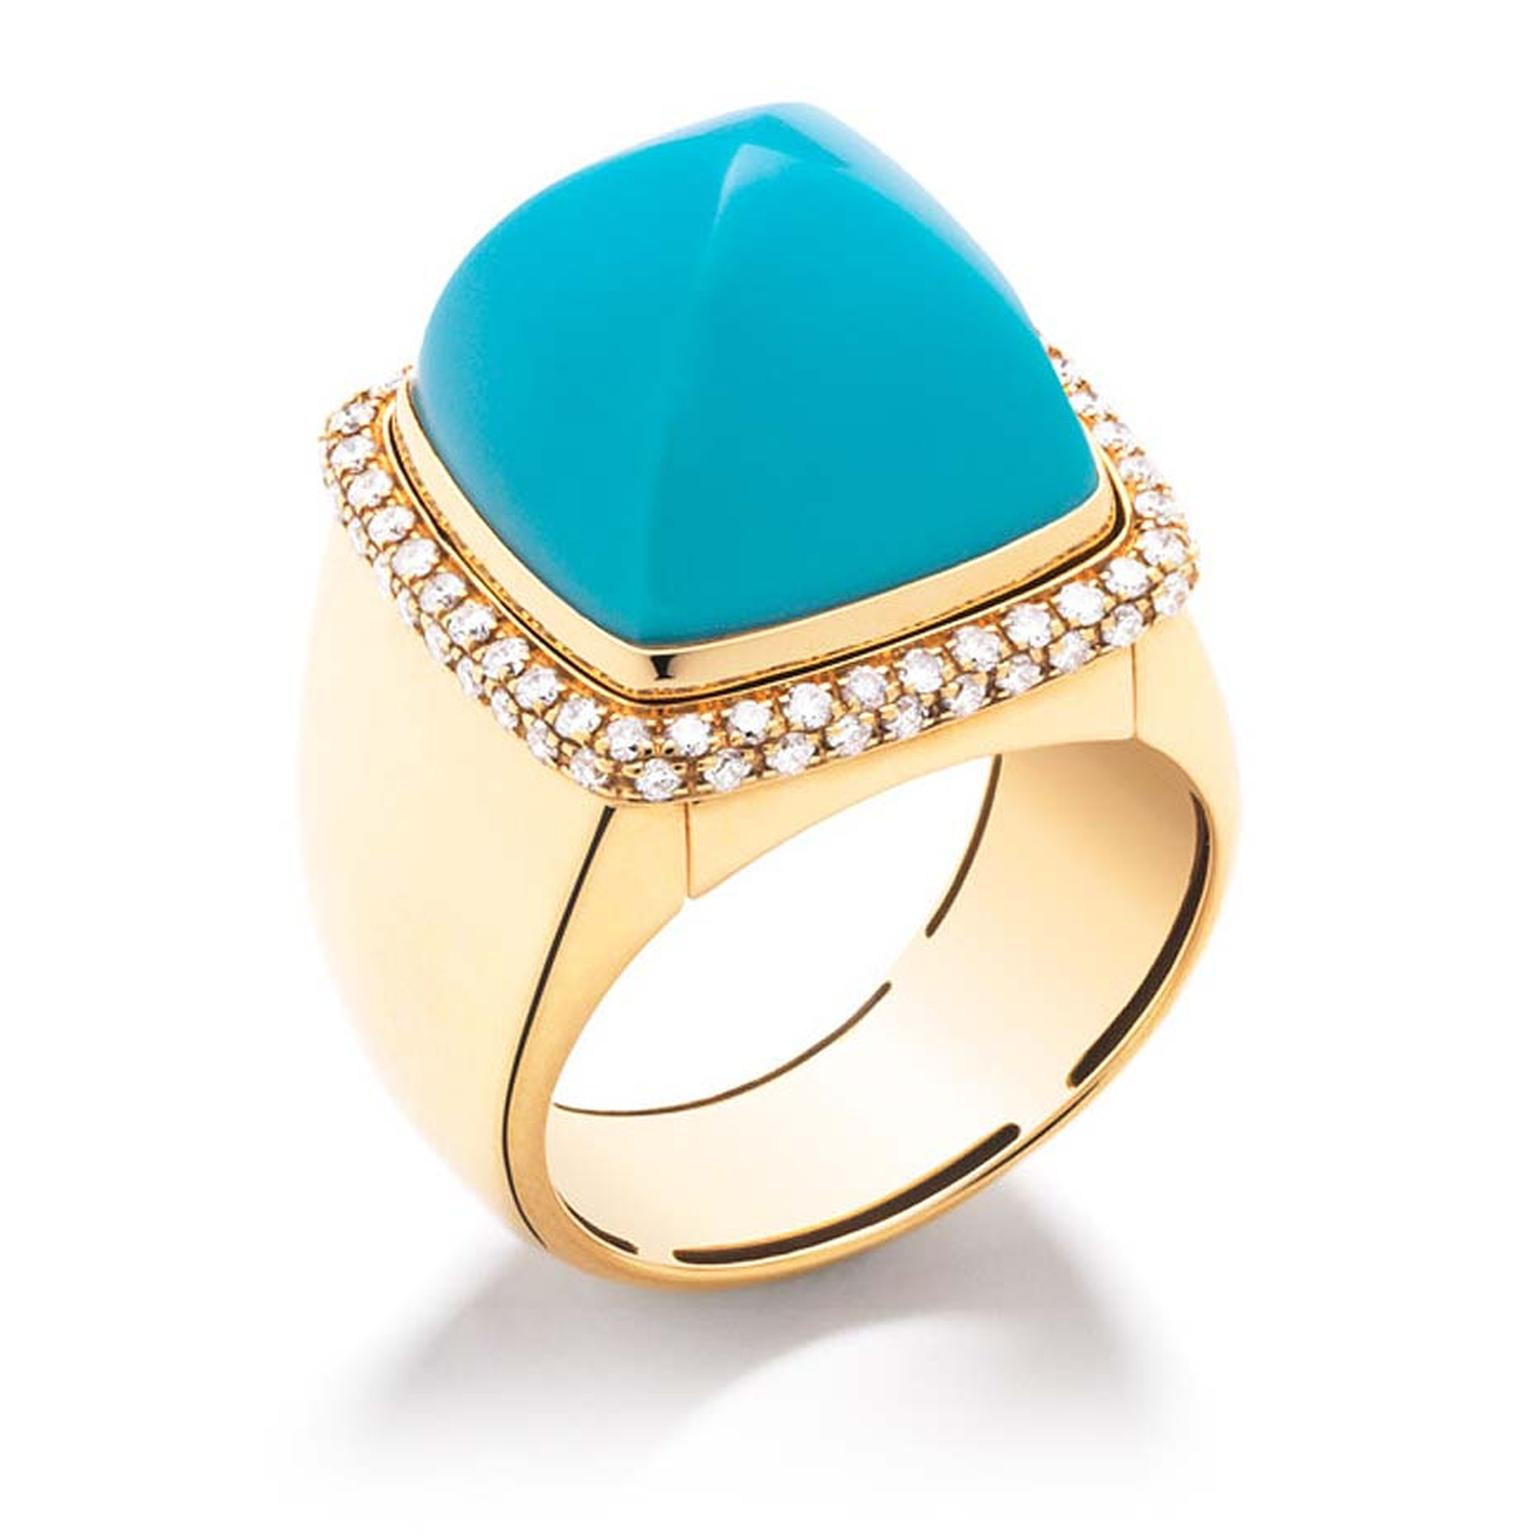 The FRED Pain de Sucre gemstone cocktail ring features an interchangeable cabochon turquoise, which can be swapped with eight additional choices of gemstone, including chalcedony and amethyst. €6,490.